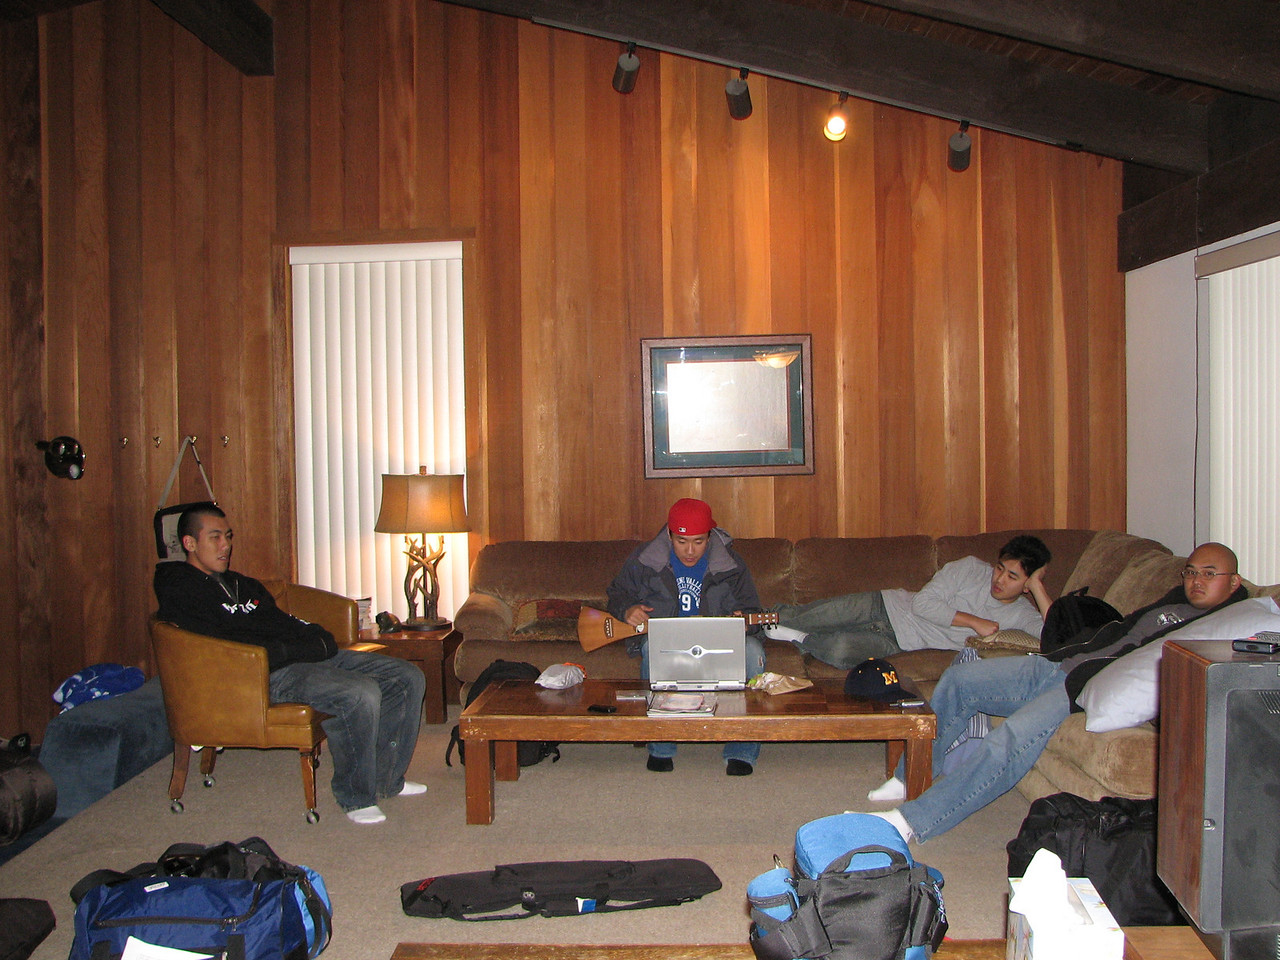 2007 01 05 Fri - Scott Chow's cabin - Scott Chow, Brian Suh, John, & Chris Ko Chillin' like villains in la salle de livin' 1